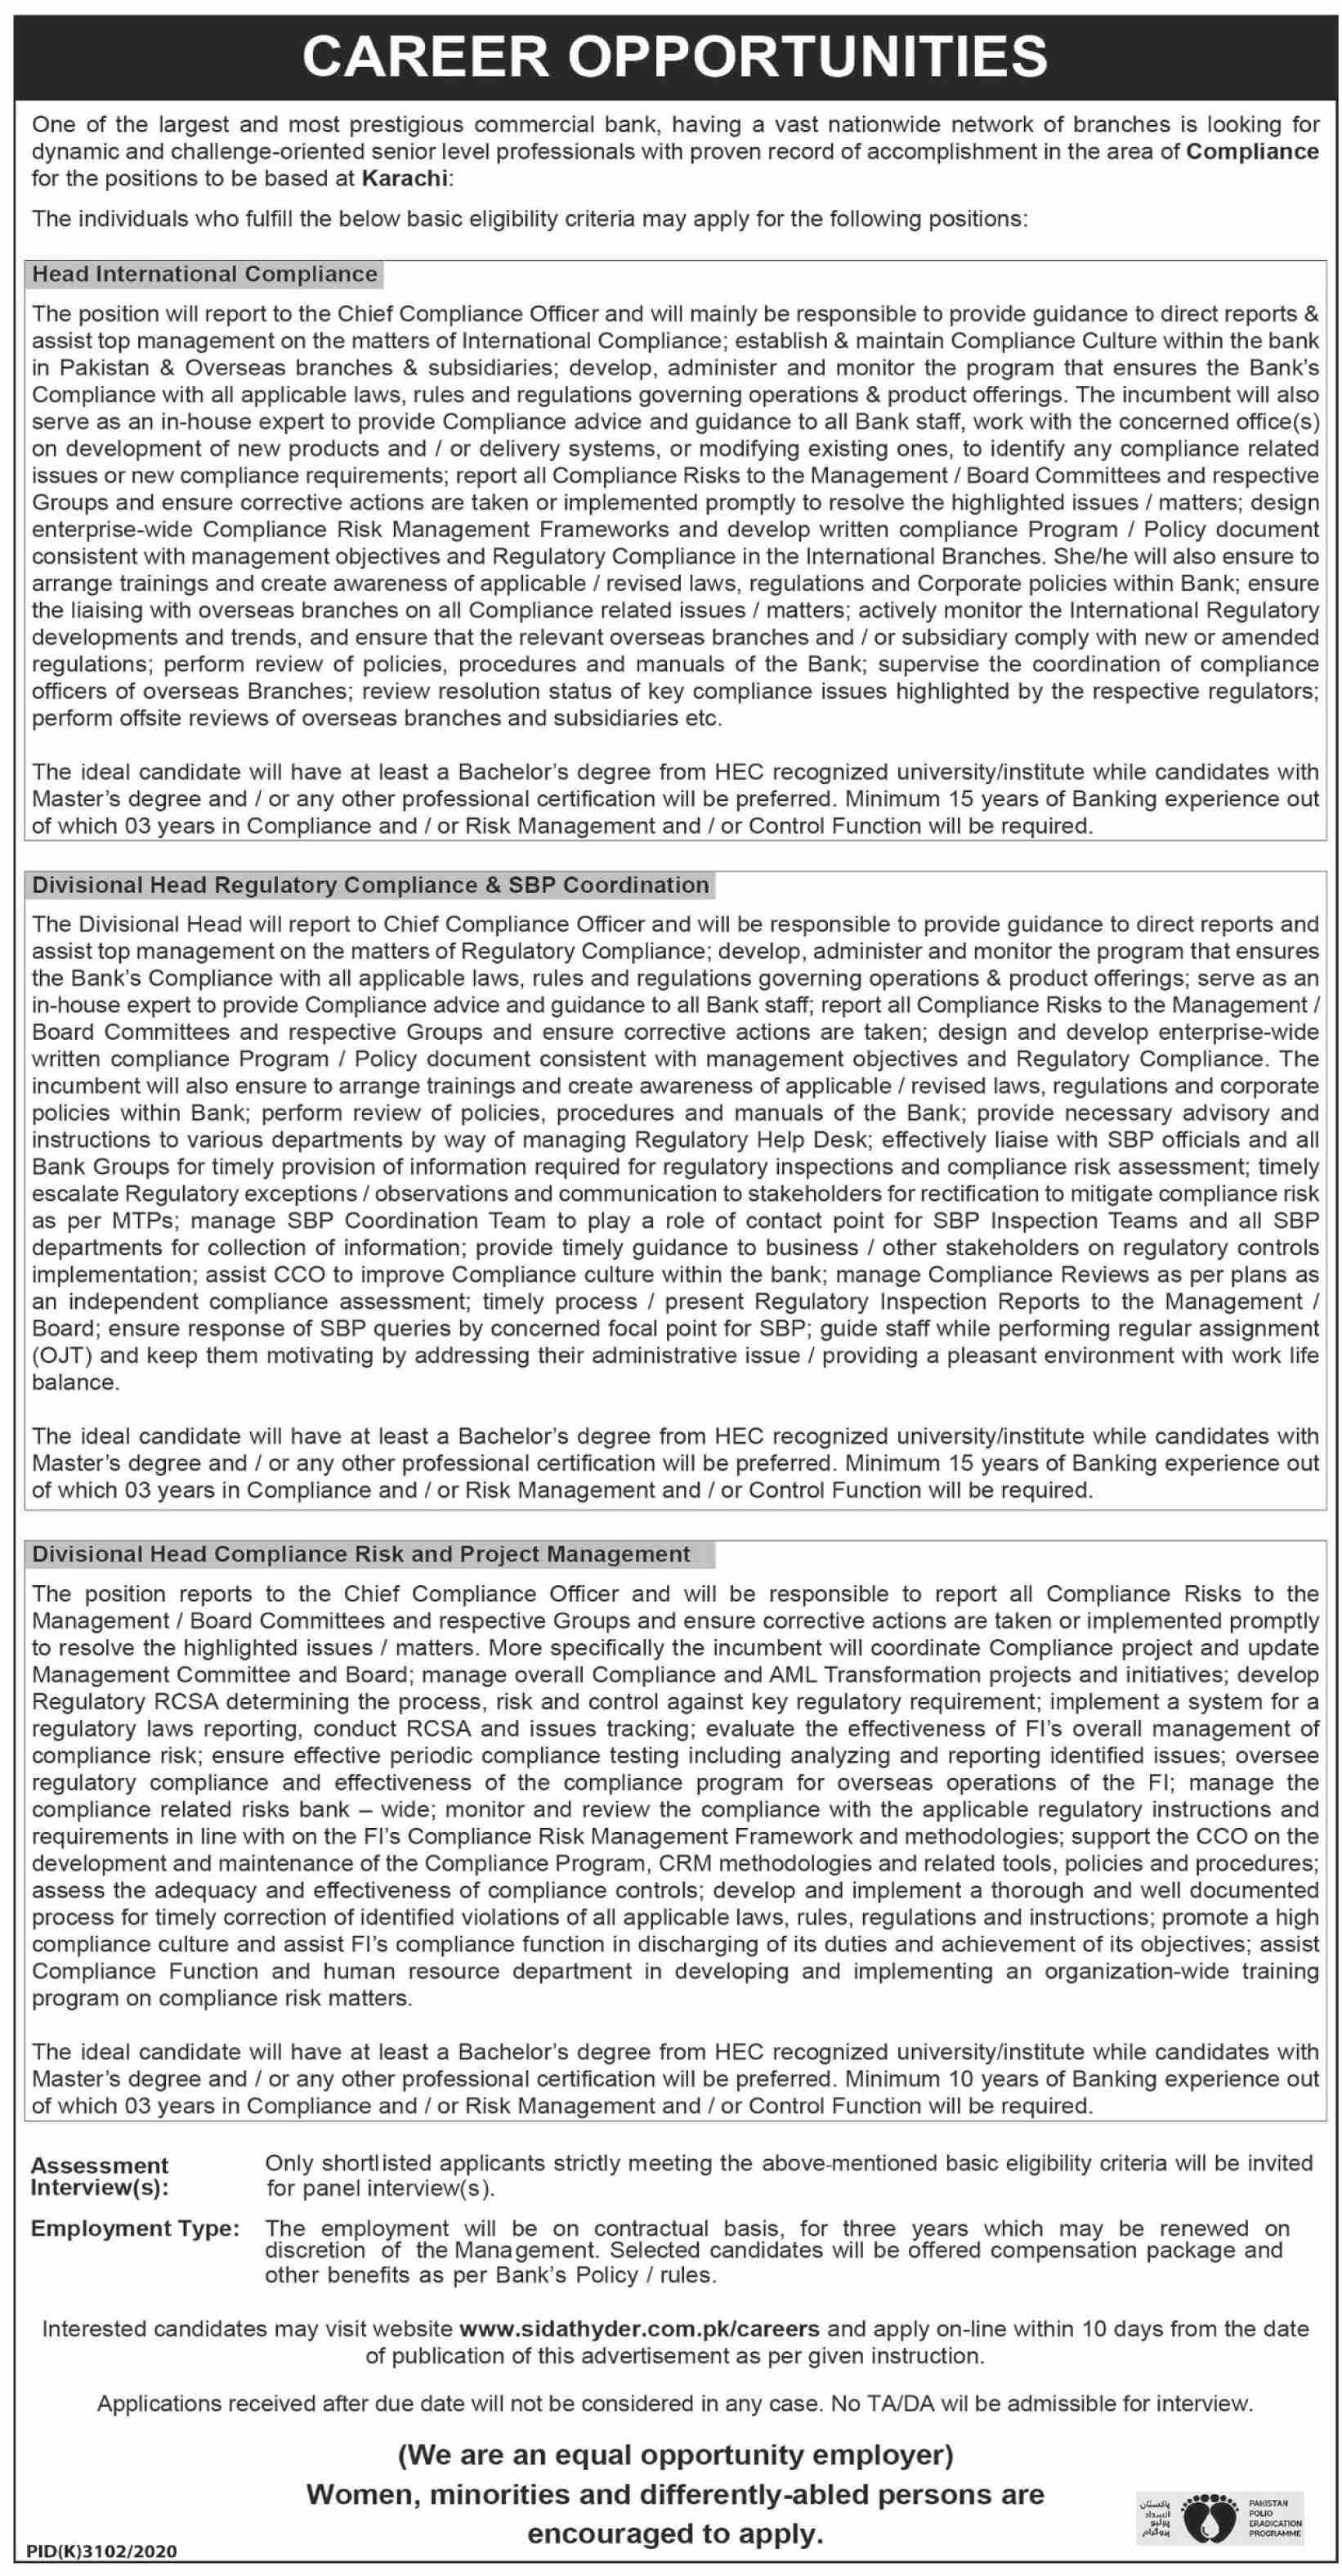 Sidat Hyder Morshed Associates Private Limited jobs newspaper ad for Head International Compliance in Karachi on 2021-05-16